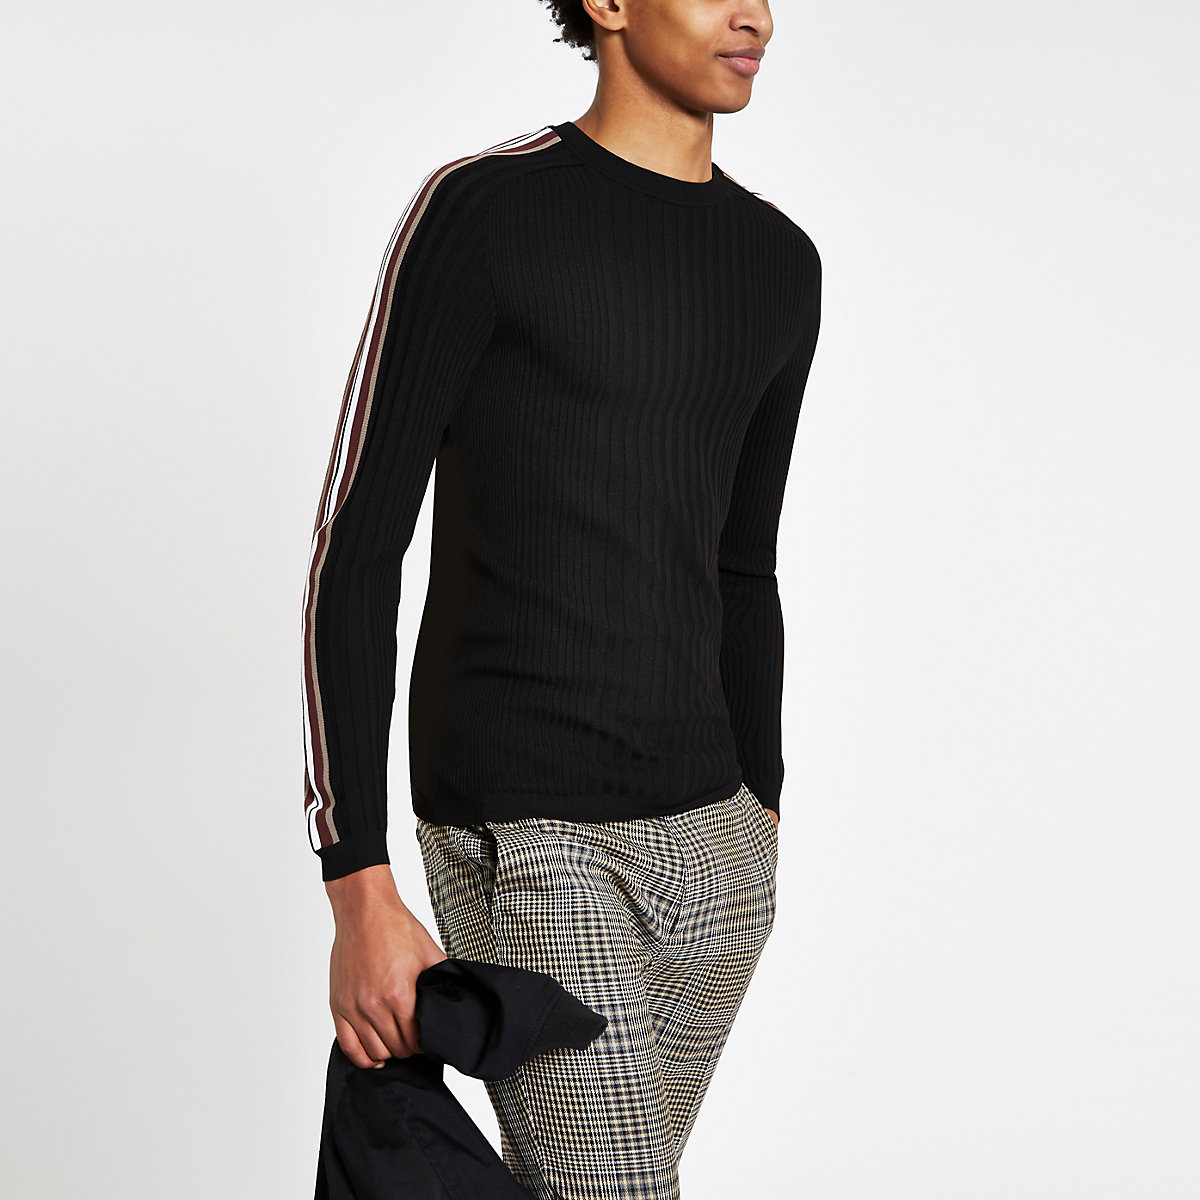 Black ribbed crew neck muscle fit sweater